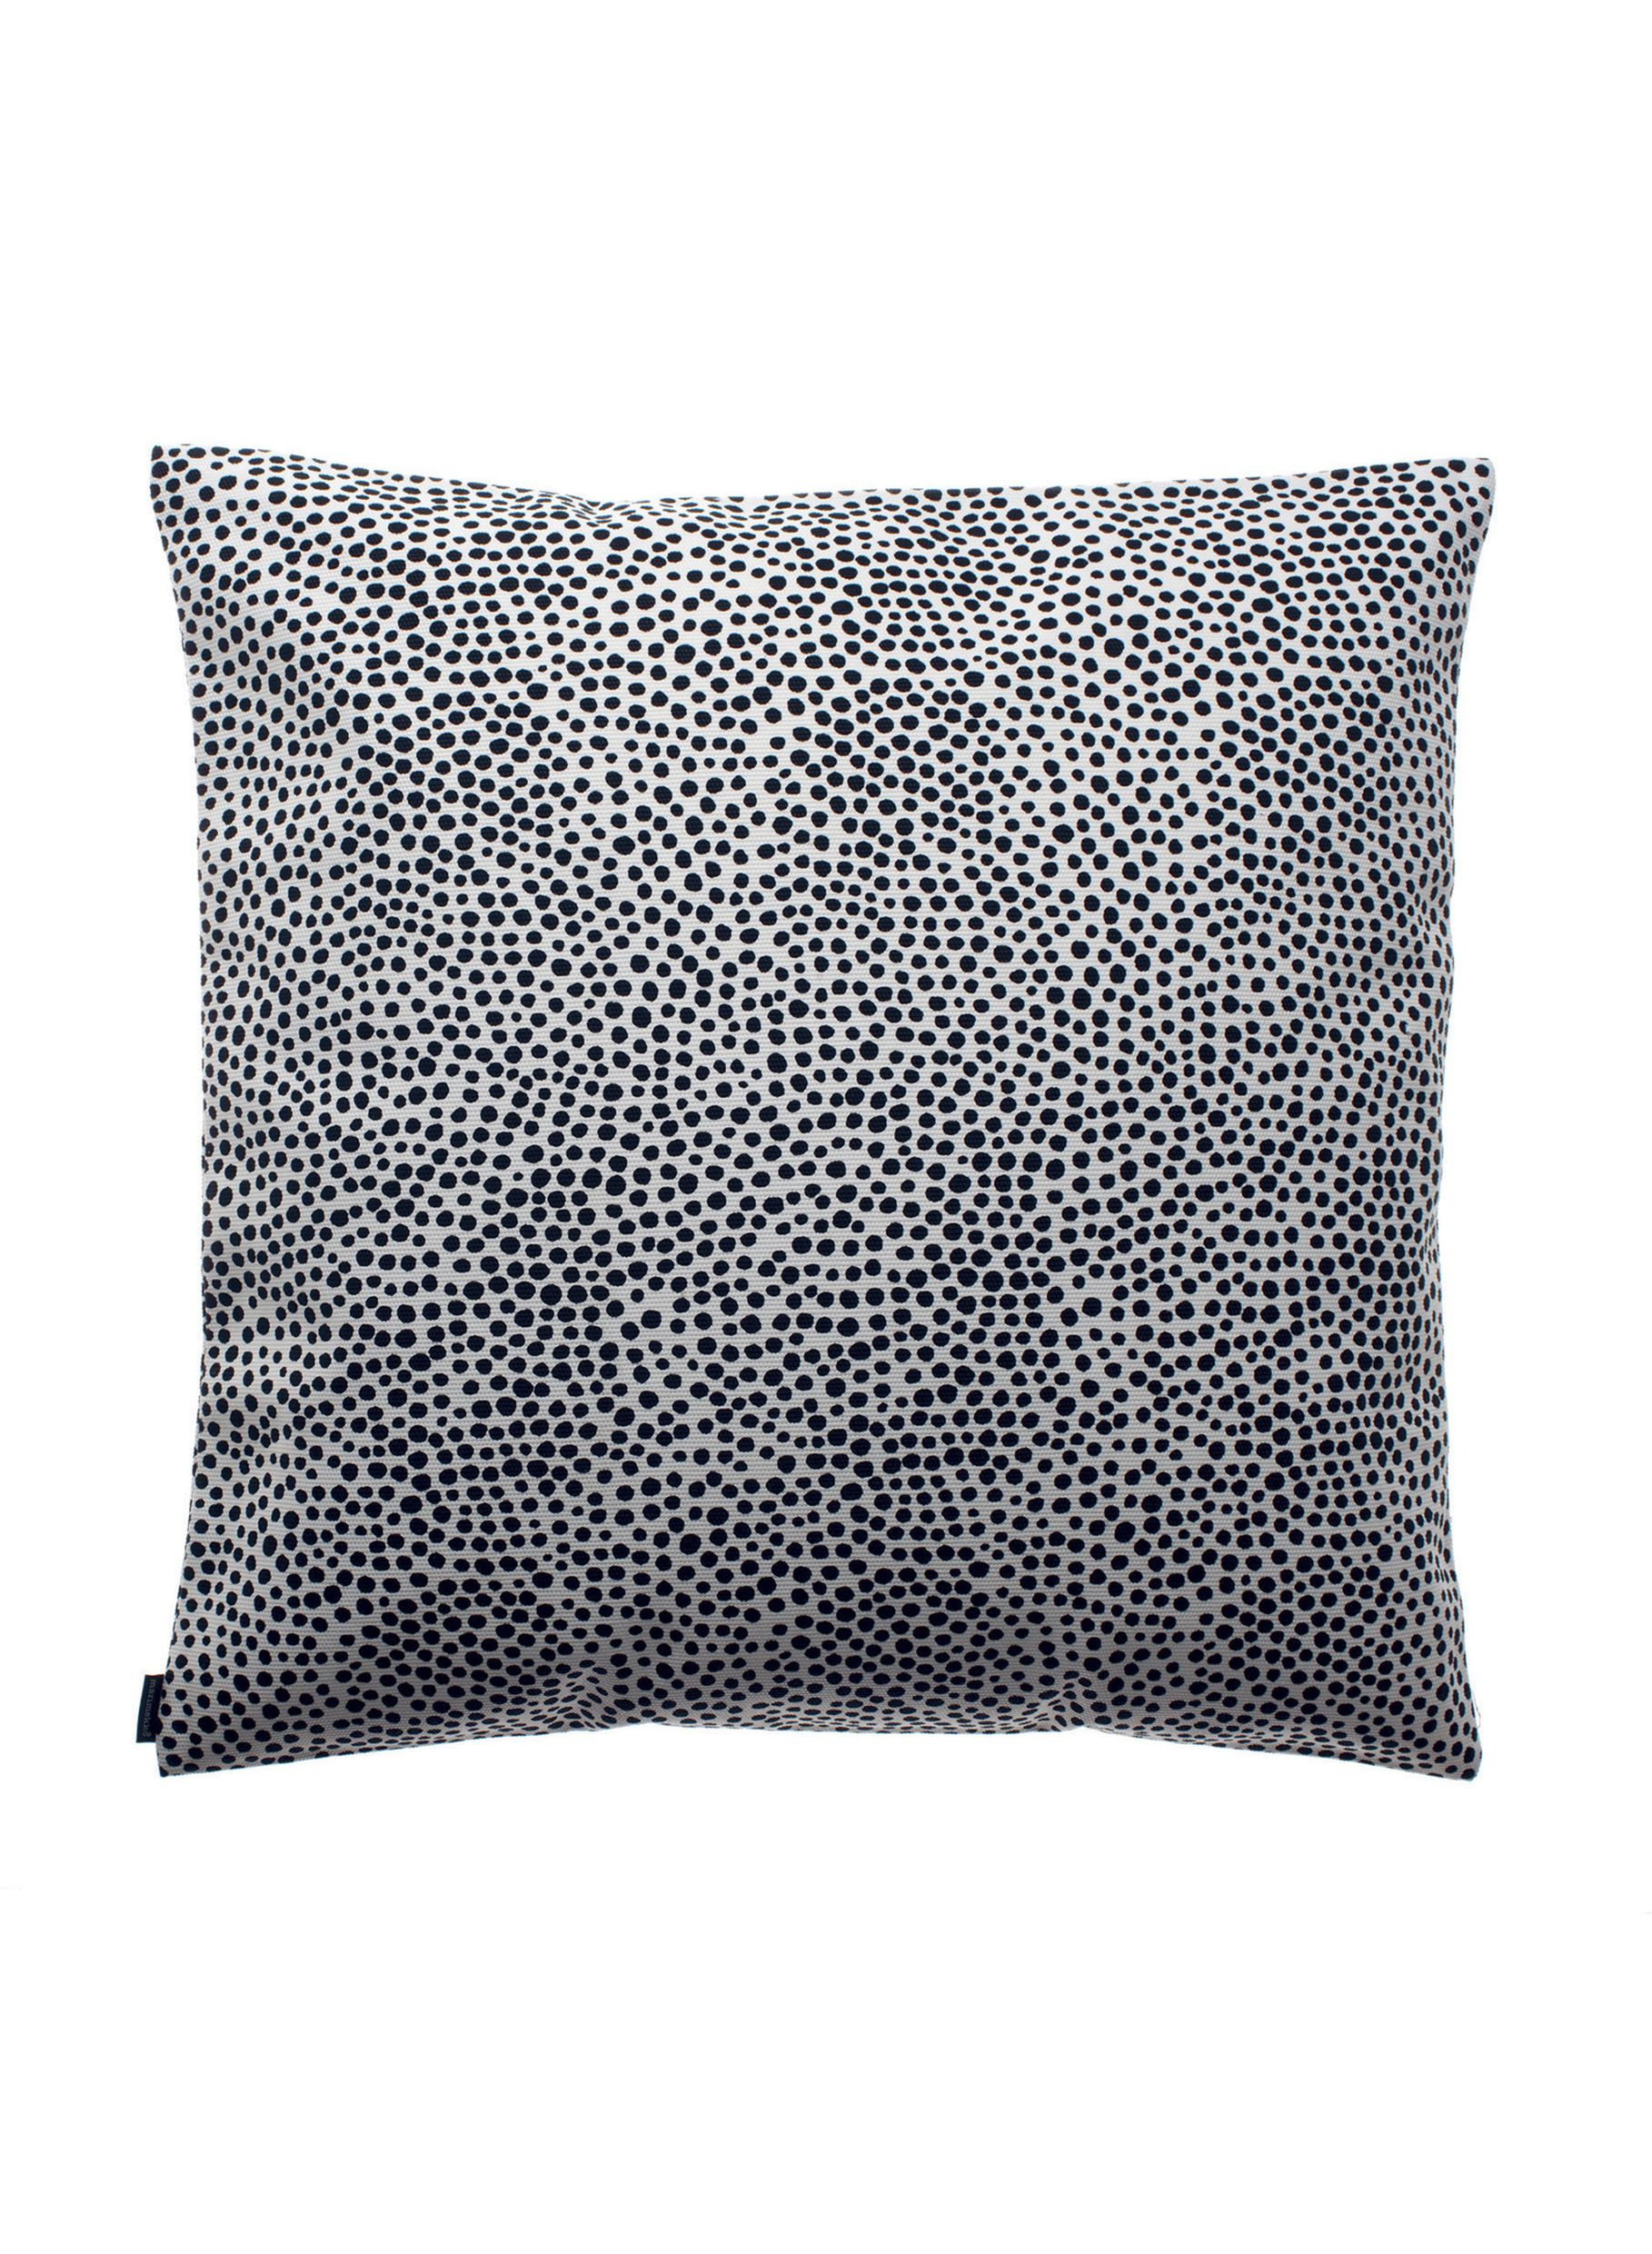 Marimekko, Pirput Parput Cushion Cover, White/Black- Placewares